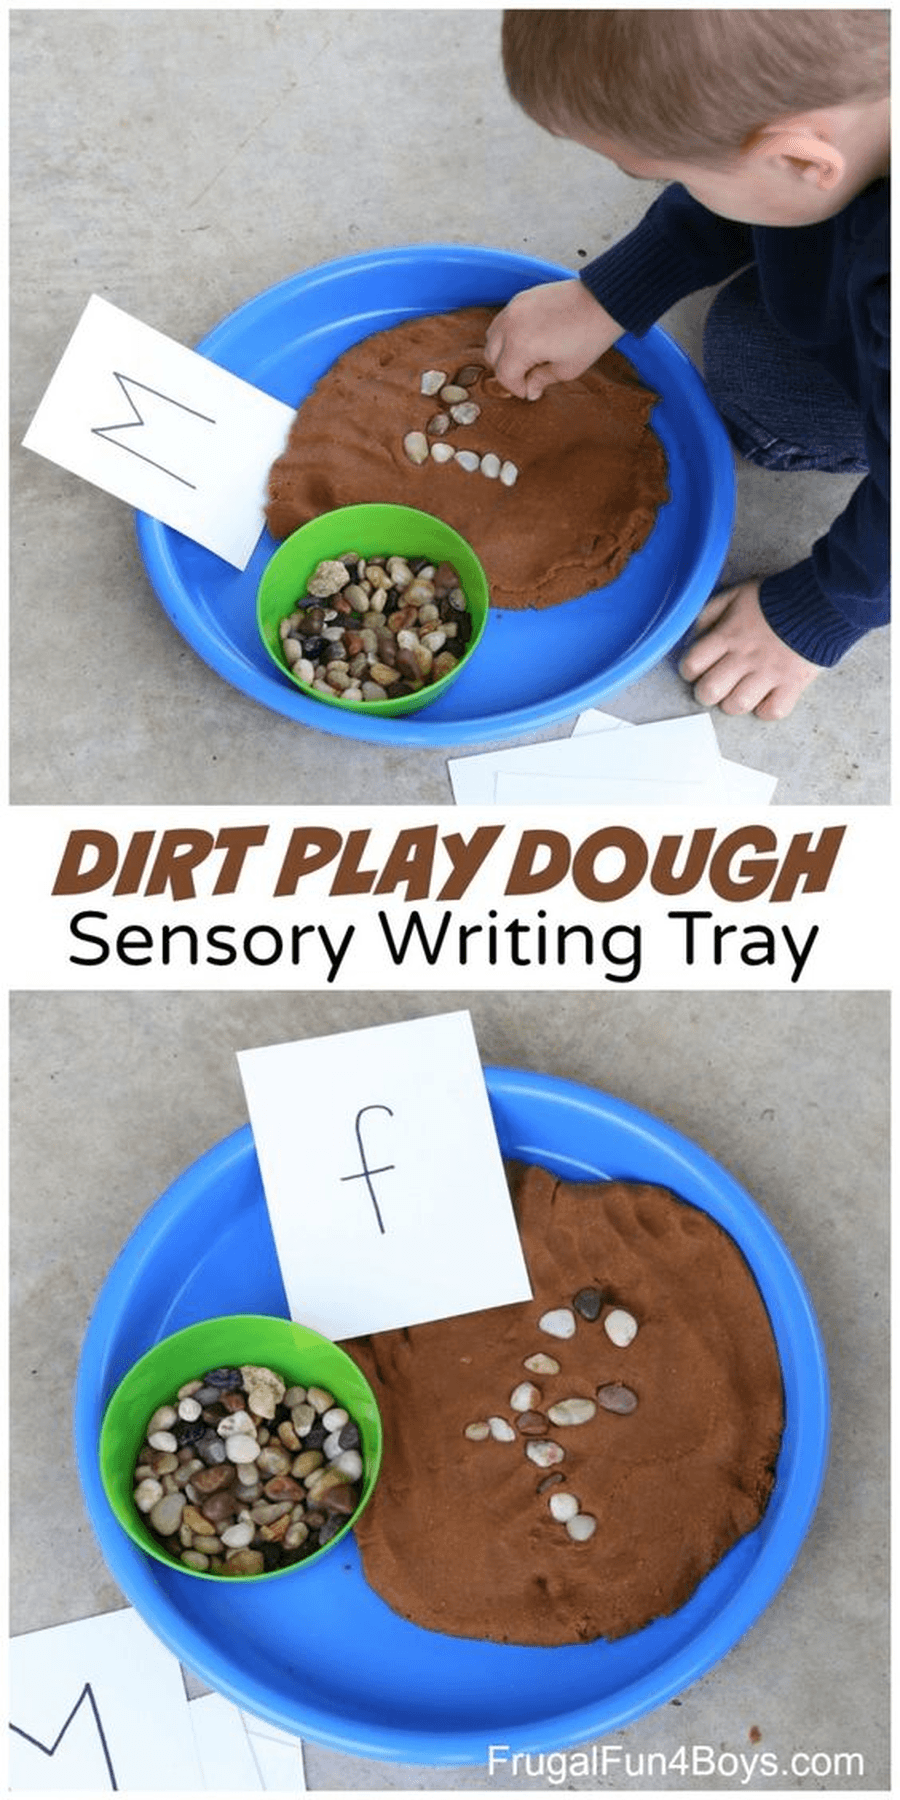 Practice making some of the letters you have been learning at school. Can you make the letters with stones in the dirt? Try making  s, a, t, p, i or n?